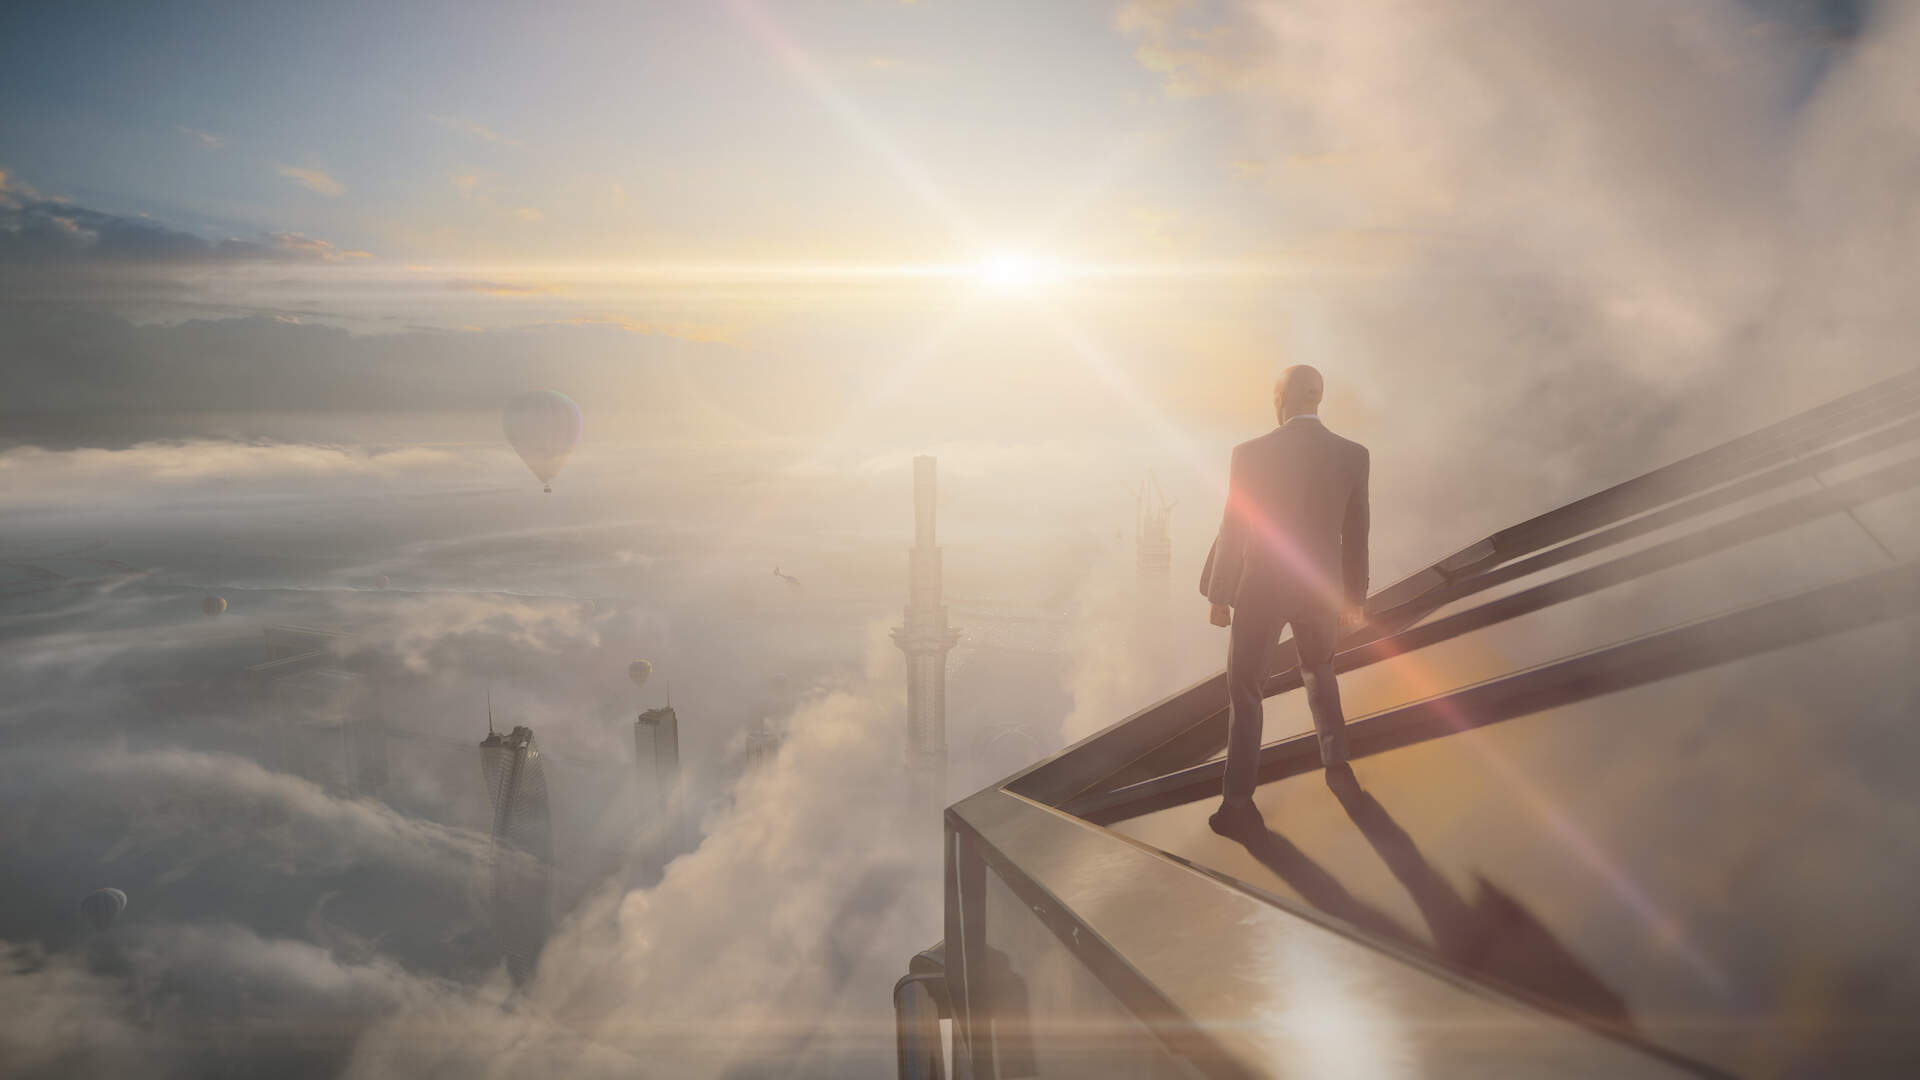 Hitman 3 Will Let Players Carry Forward Locations and Progress From Previous Games